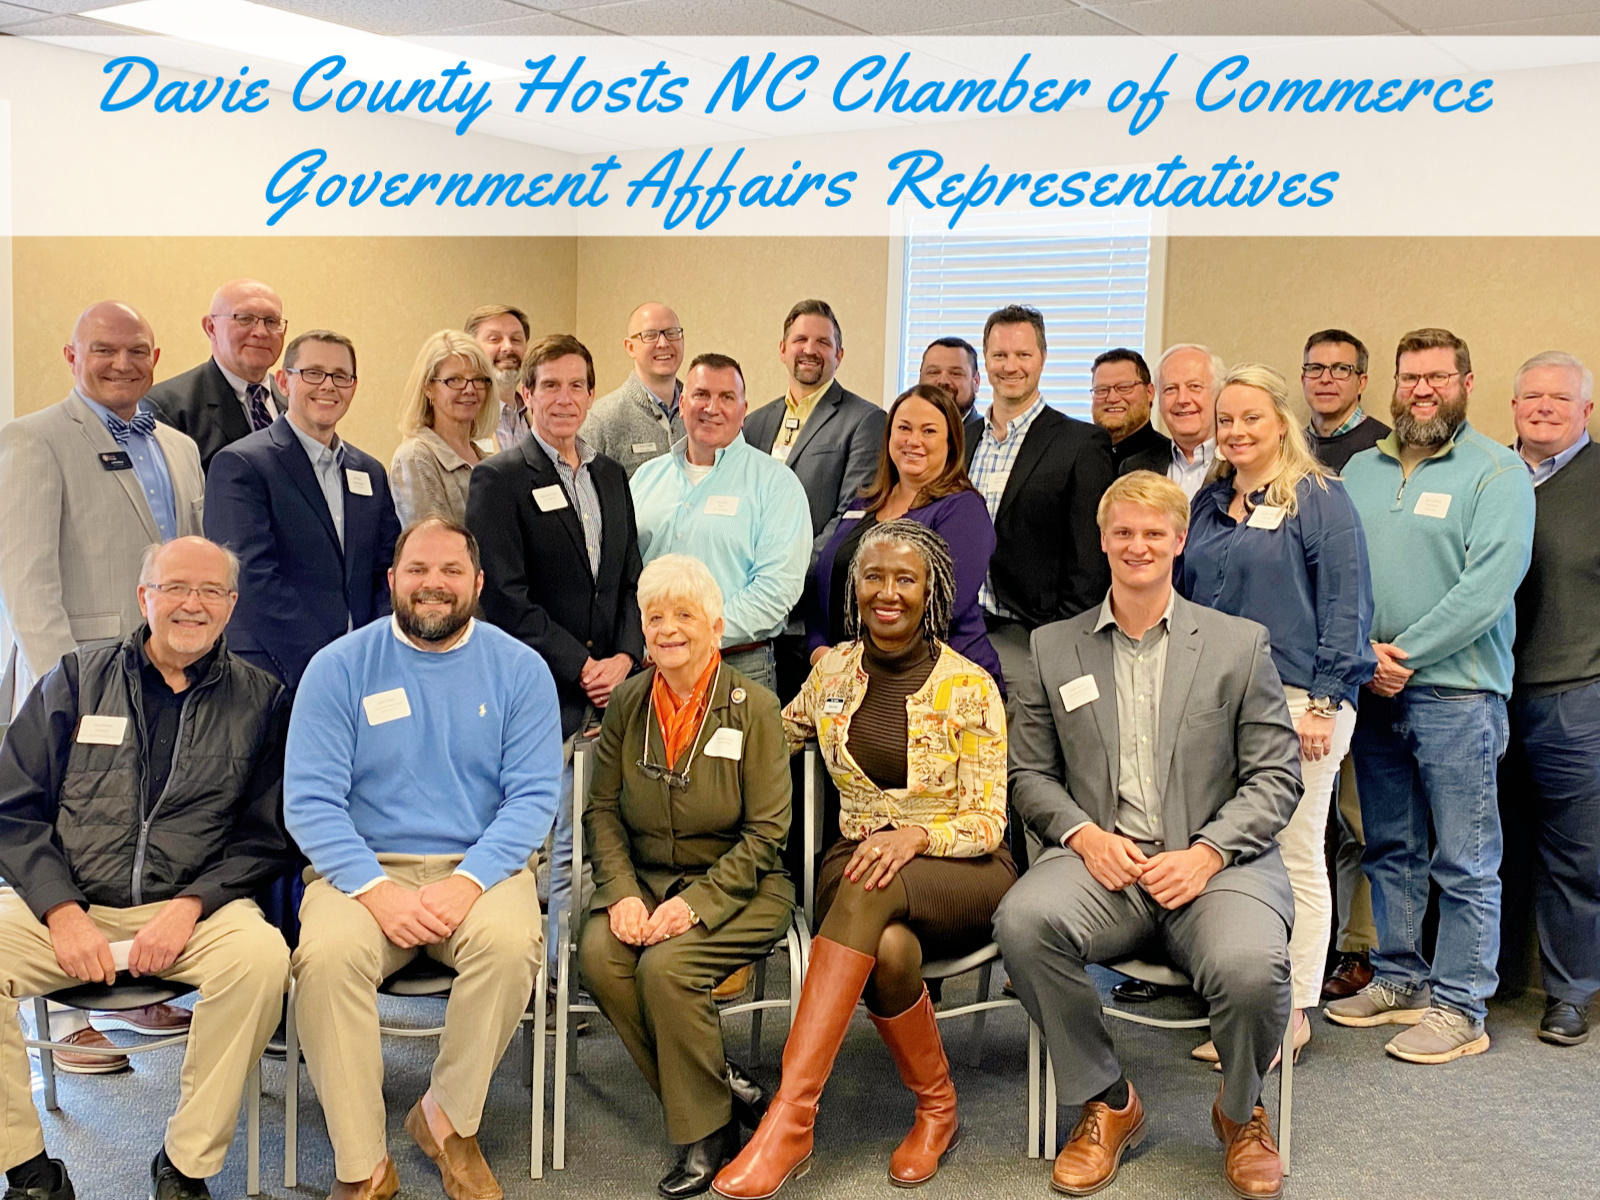 Davie County hosts NC Chamber of Commerce Government Affairs Representatives